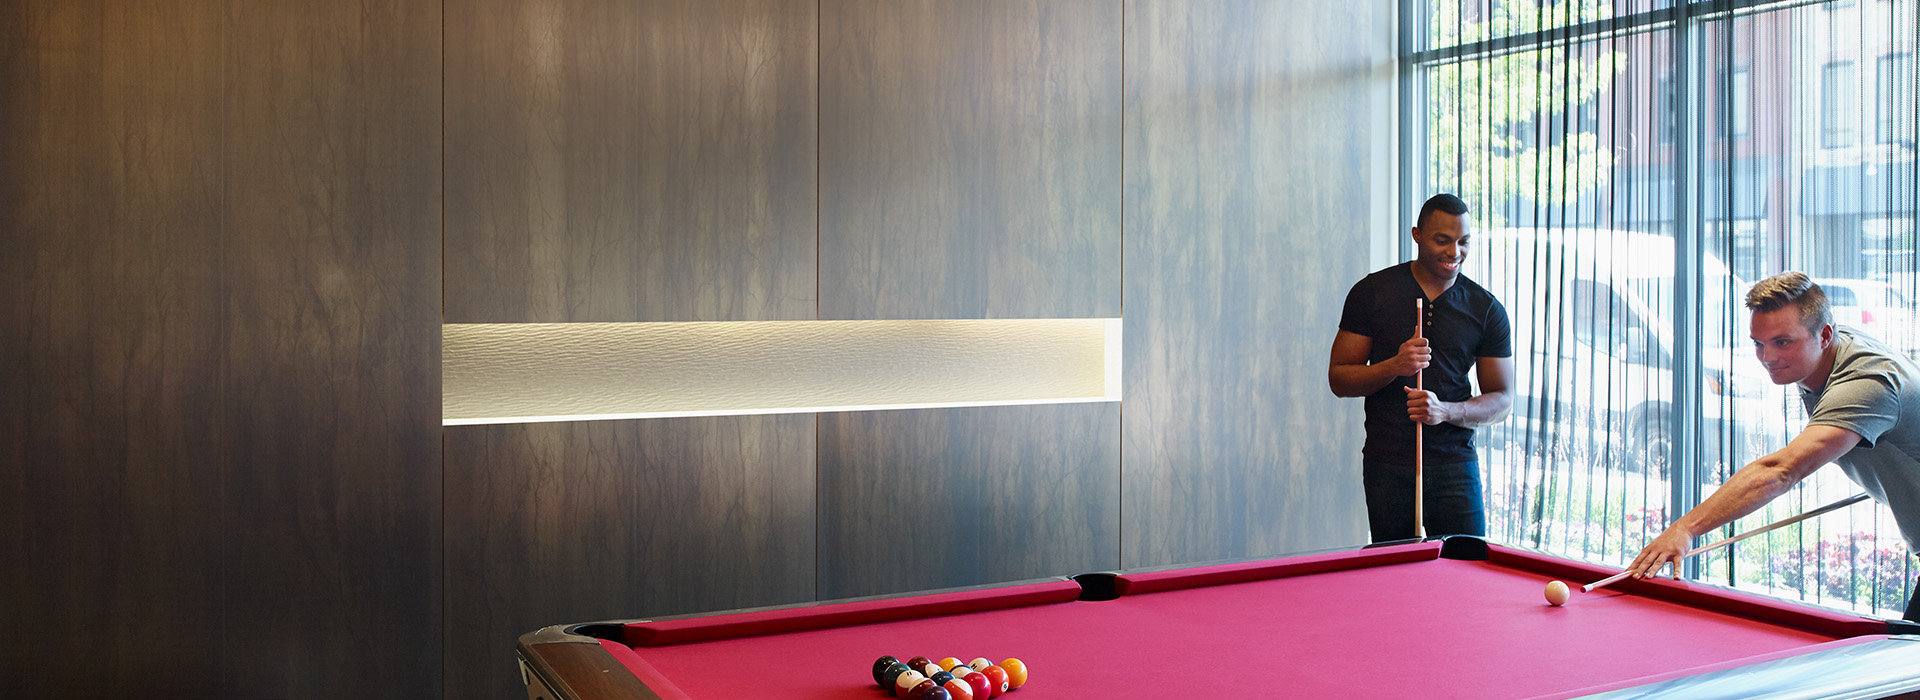 Game room pool table wall M6484 Argent Craft M8547 Oxibronze DecoMetal